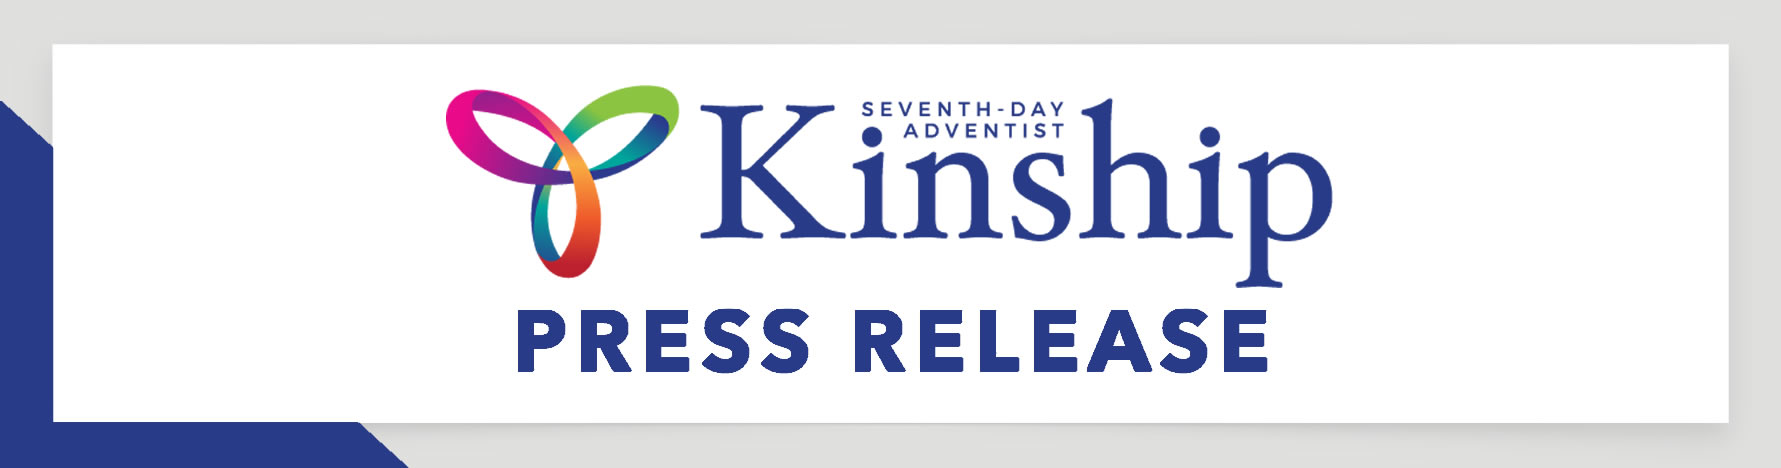 SDA Kinship Press Release